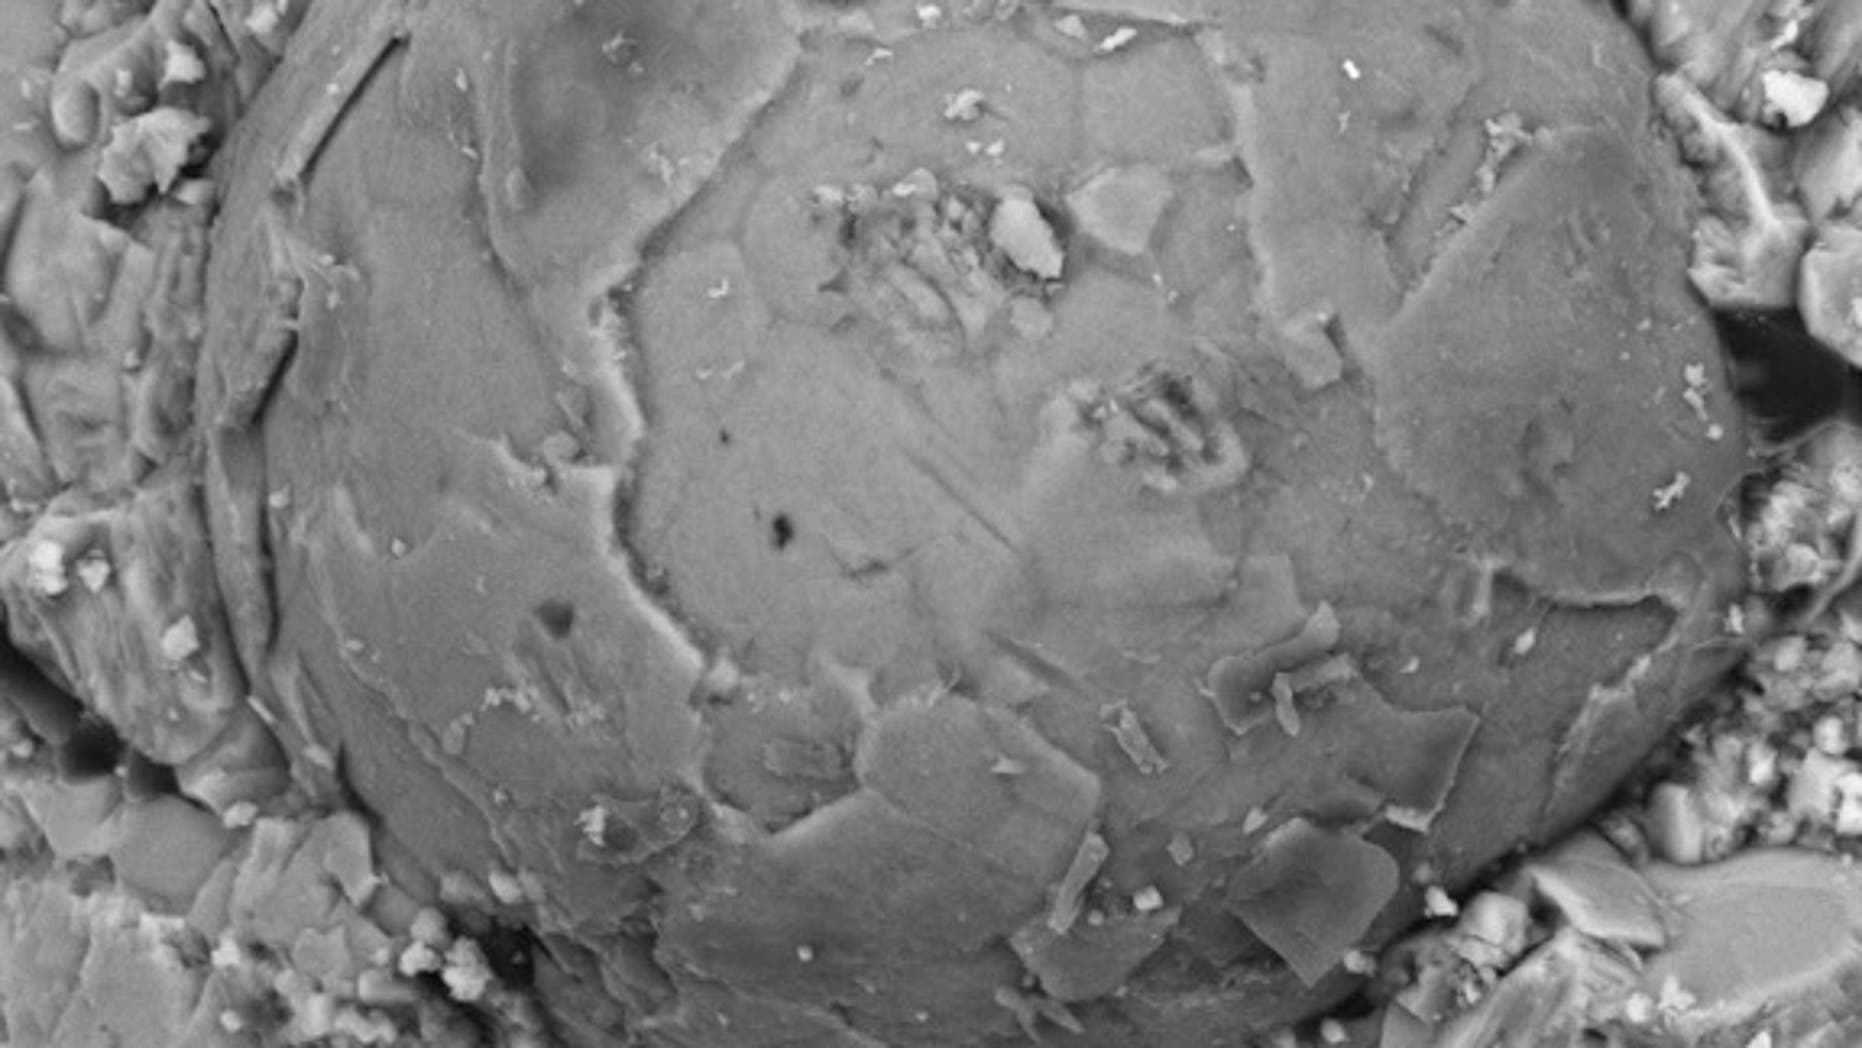 A Cambrian embryo fossil exposed by acid etching on rock. The polygonal pattern suggests that the embryo was in the multicellular blastula stage of development.